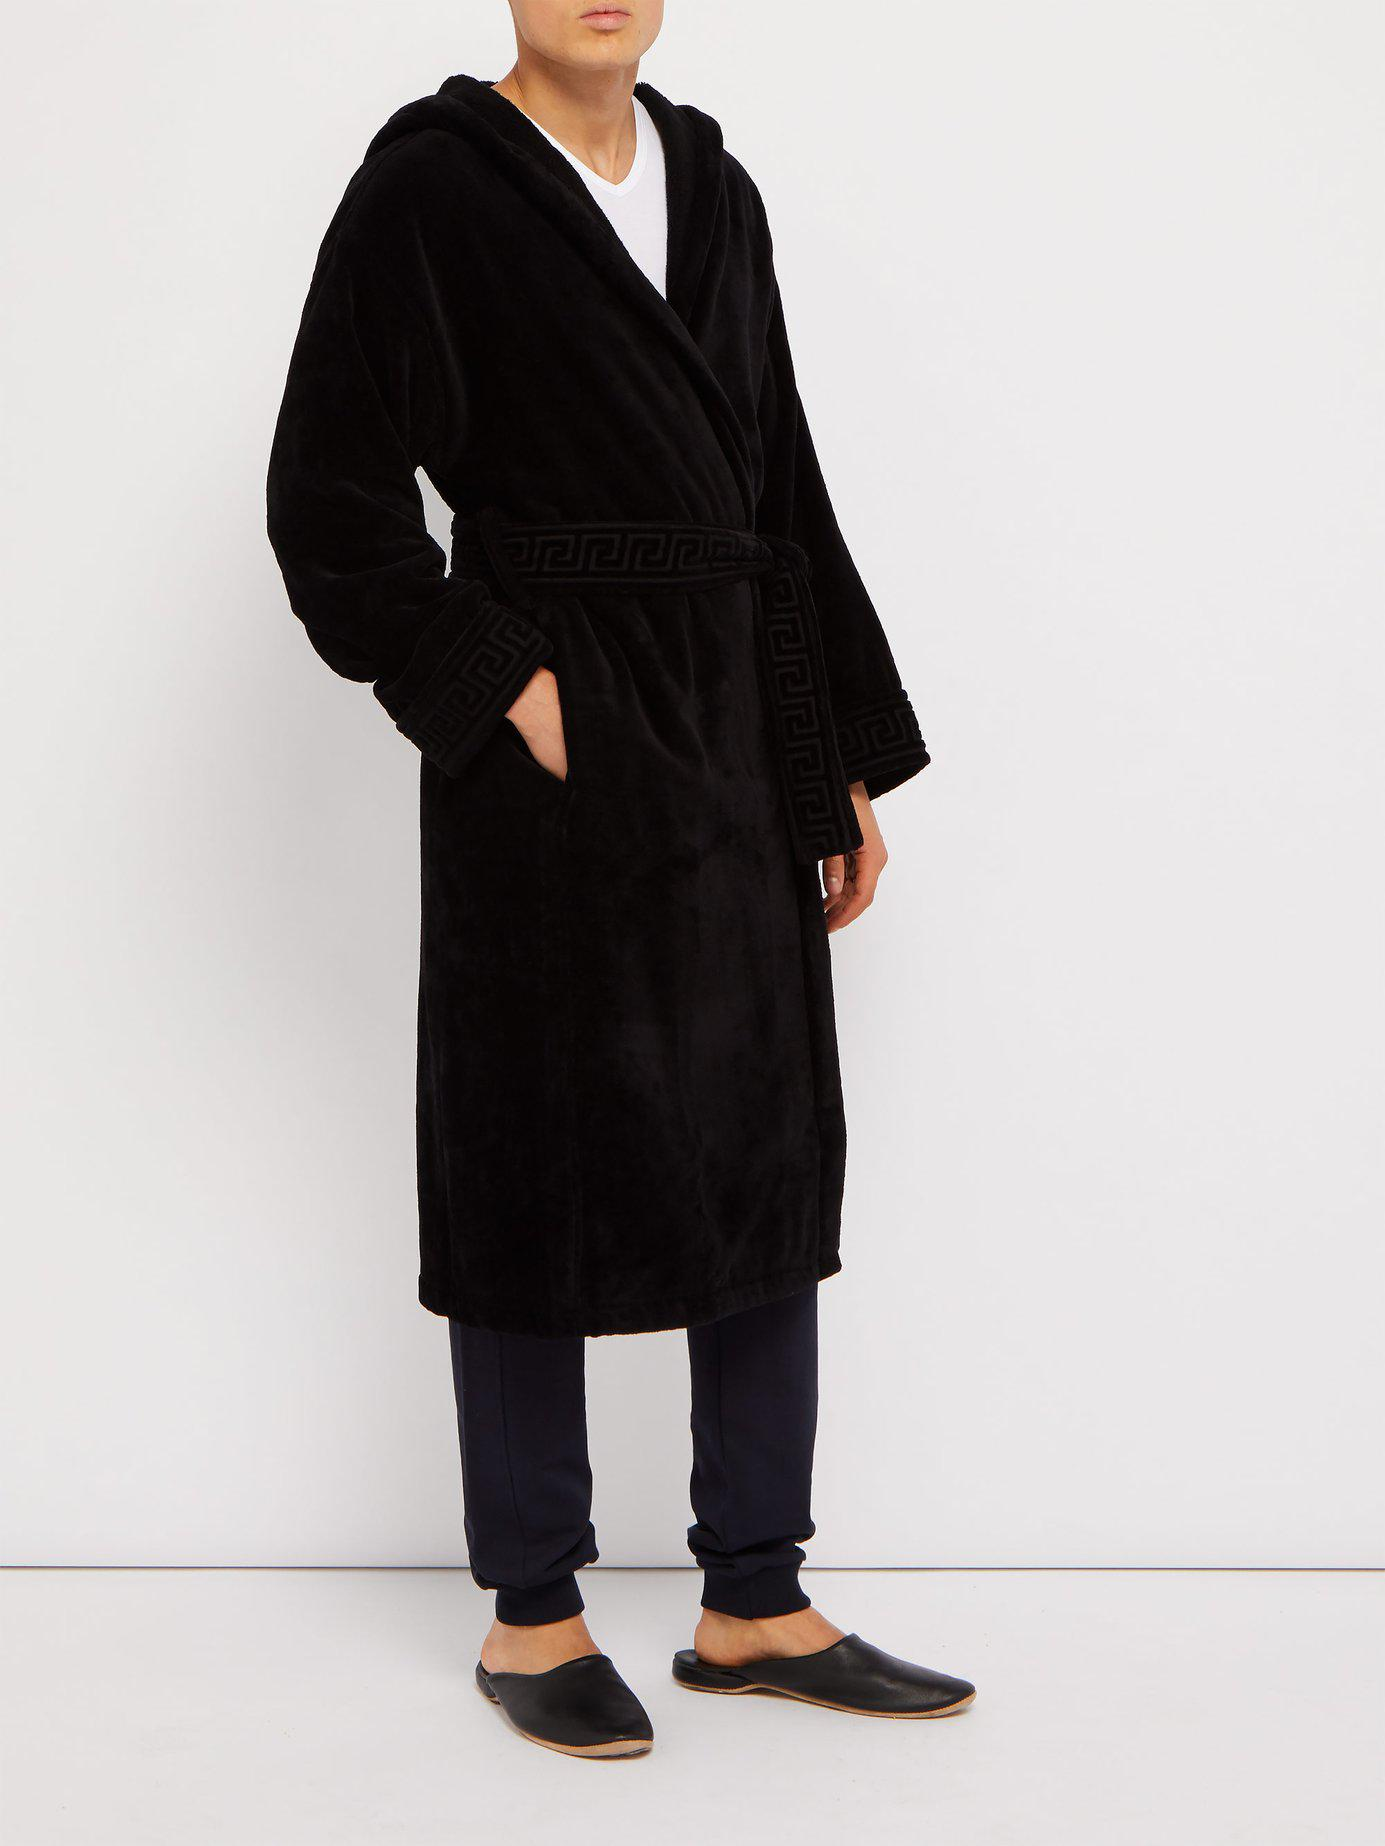 277918a162 Lyst - Versace Medusa Cotton Hooded Robe in Black for Men